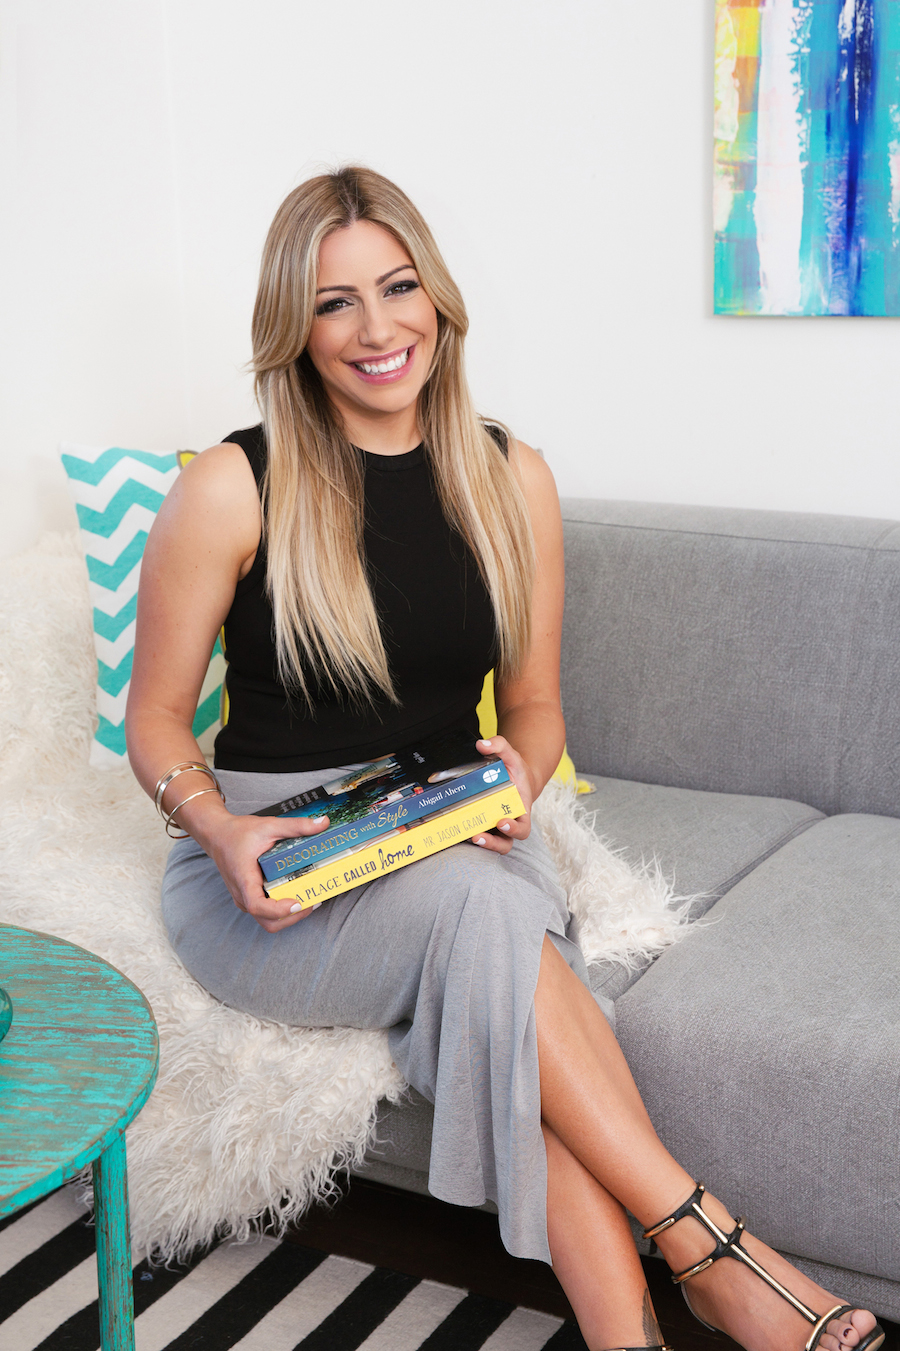 Bec Douros with style books